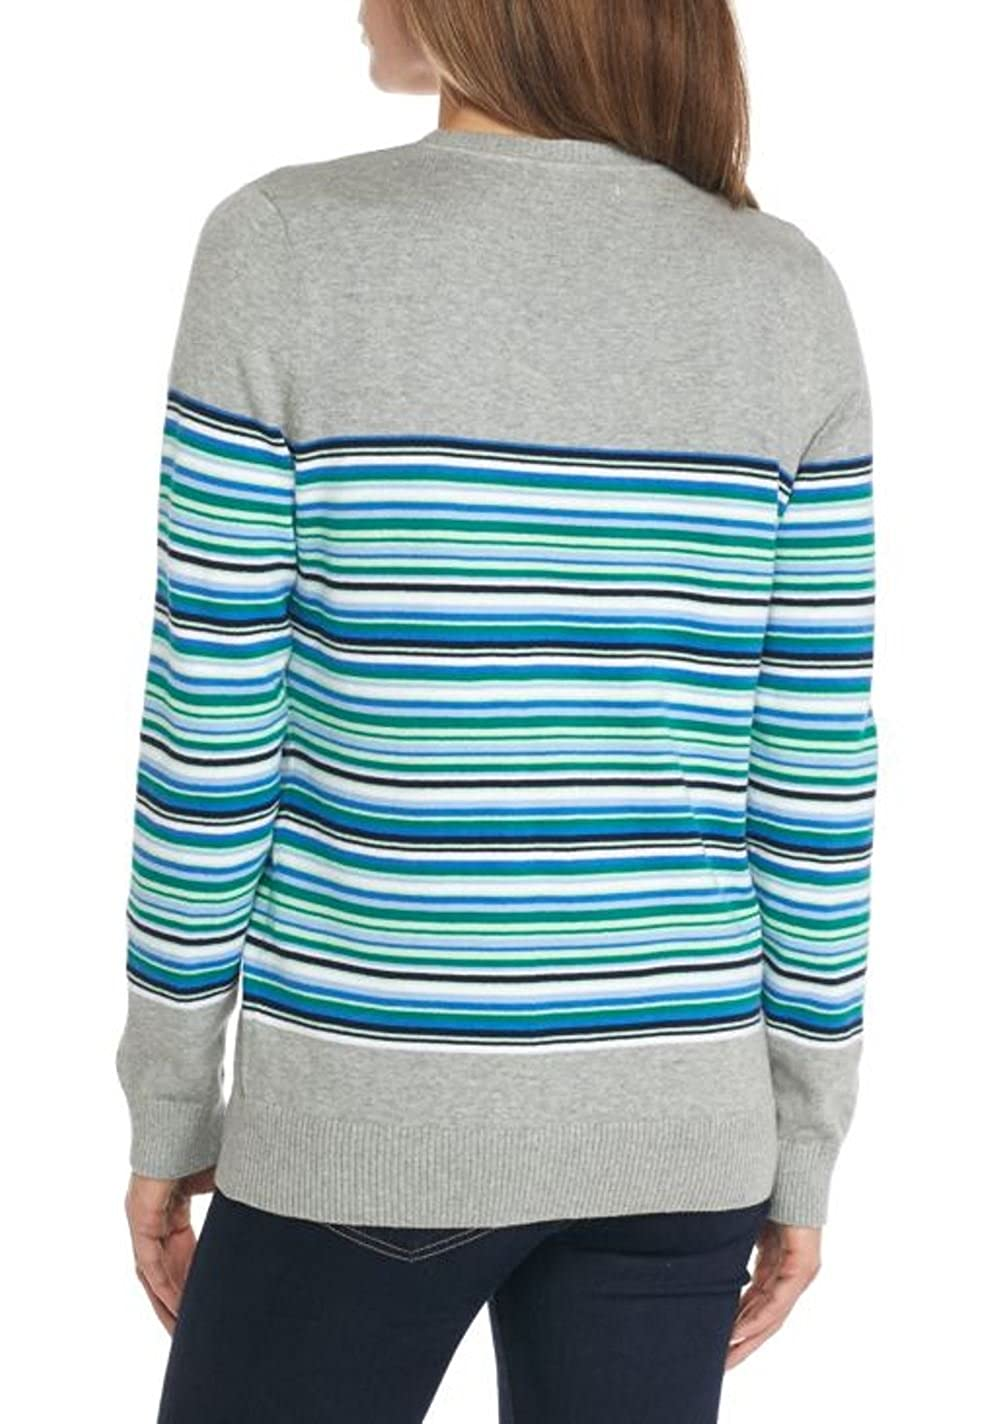 49efb112c Kim Rogers Women s Cable V-Neck Striped Sweater at Amazon Women s ...